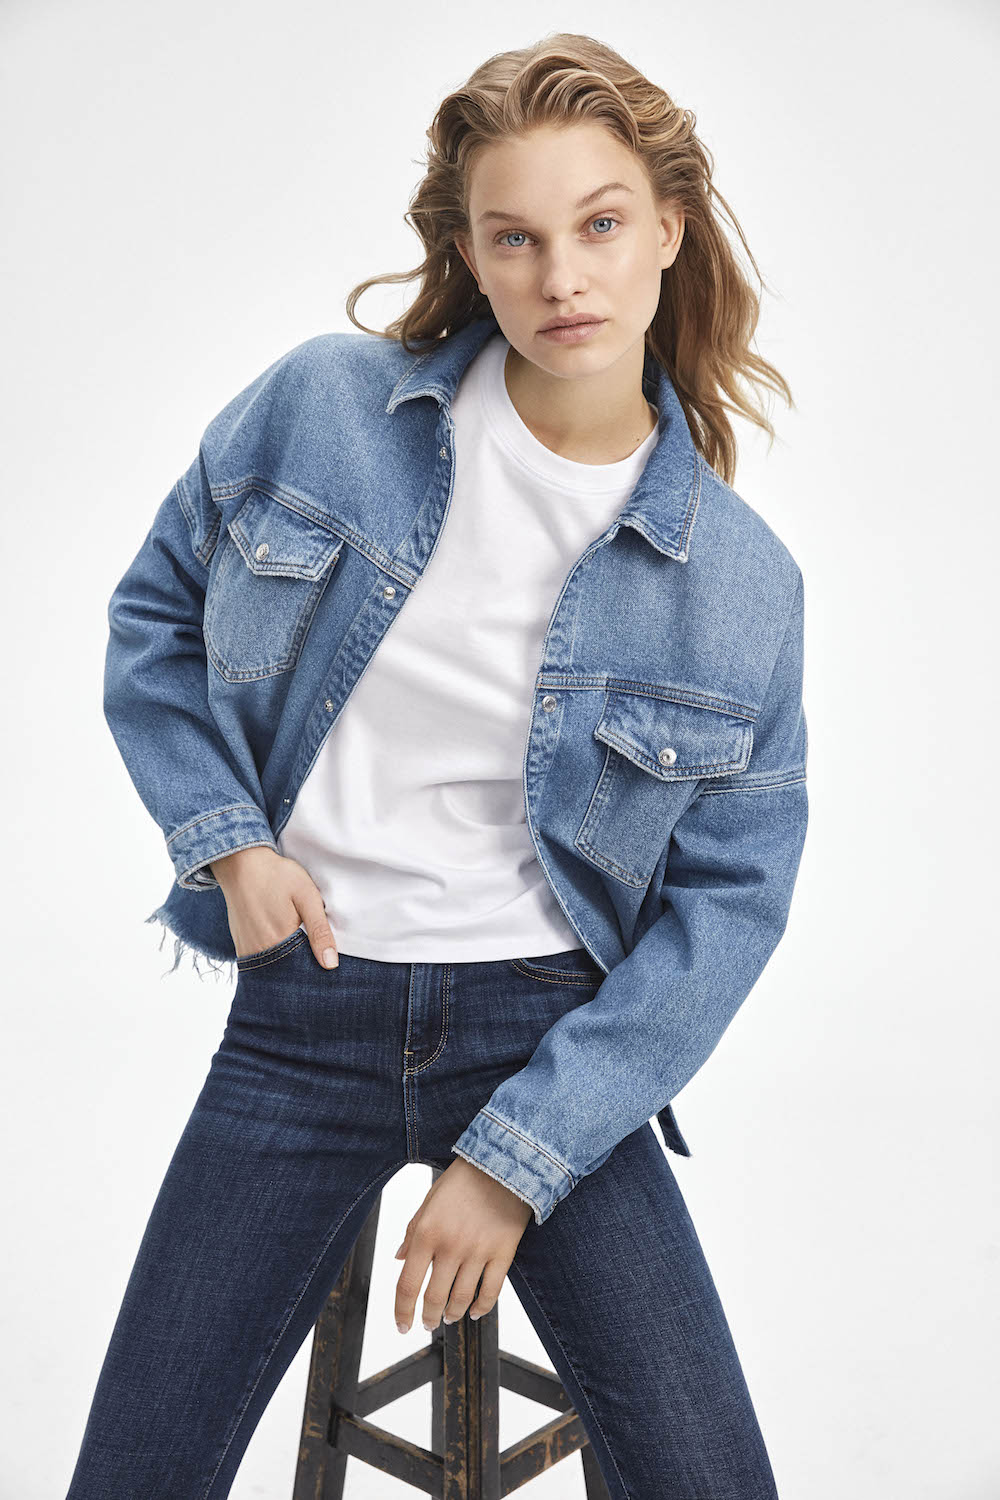 Mavi's Fall/Winter 20-21 collection features new fashion fits and sustainable fabrics developed exclusively for the premium denim brand.